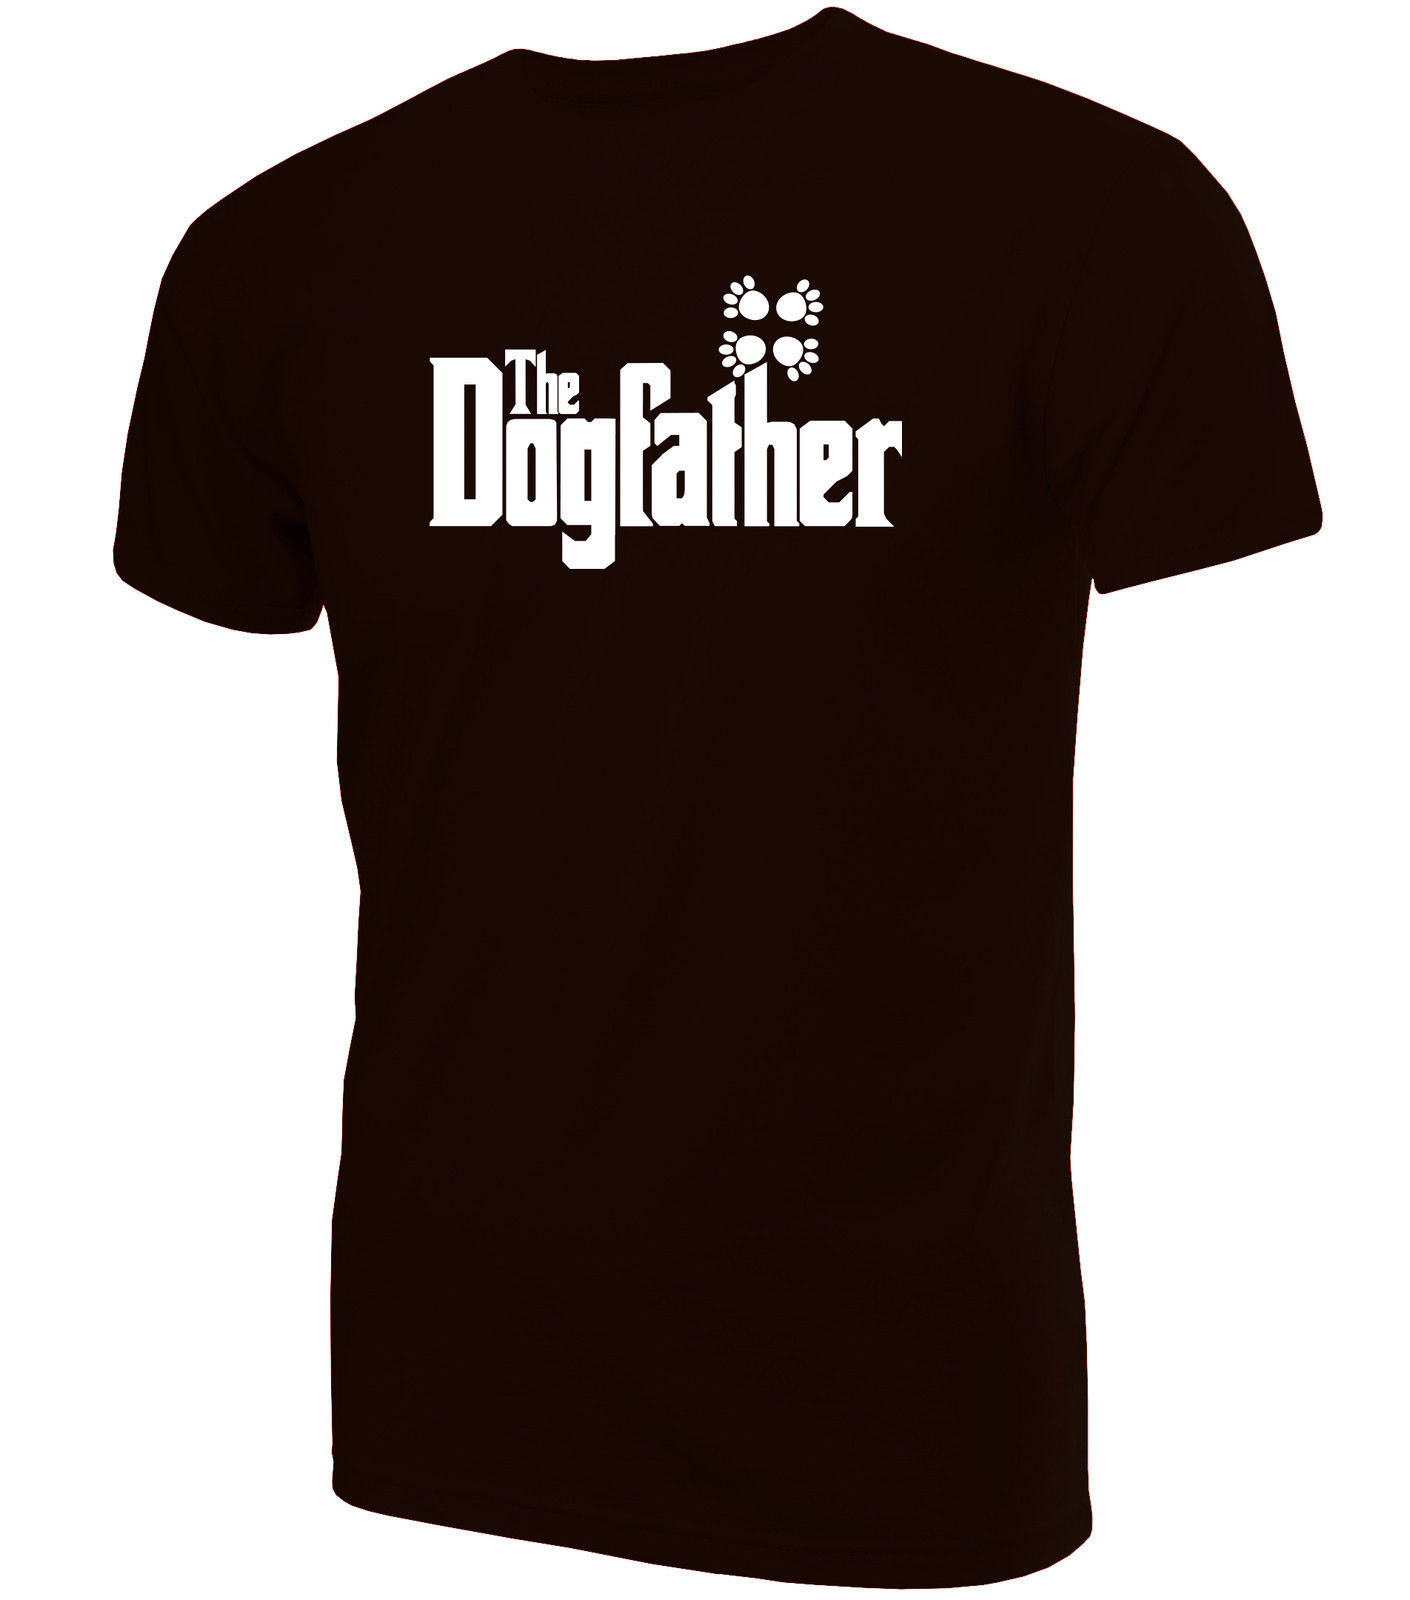 The DogFather Printed T-Shirt ~ Novelty Birthday Present or Gift All Sizes  100% cotton tee shirt,  tops wholesale tee